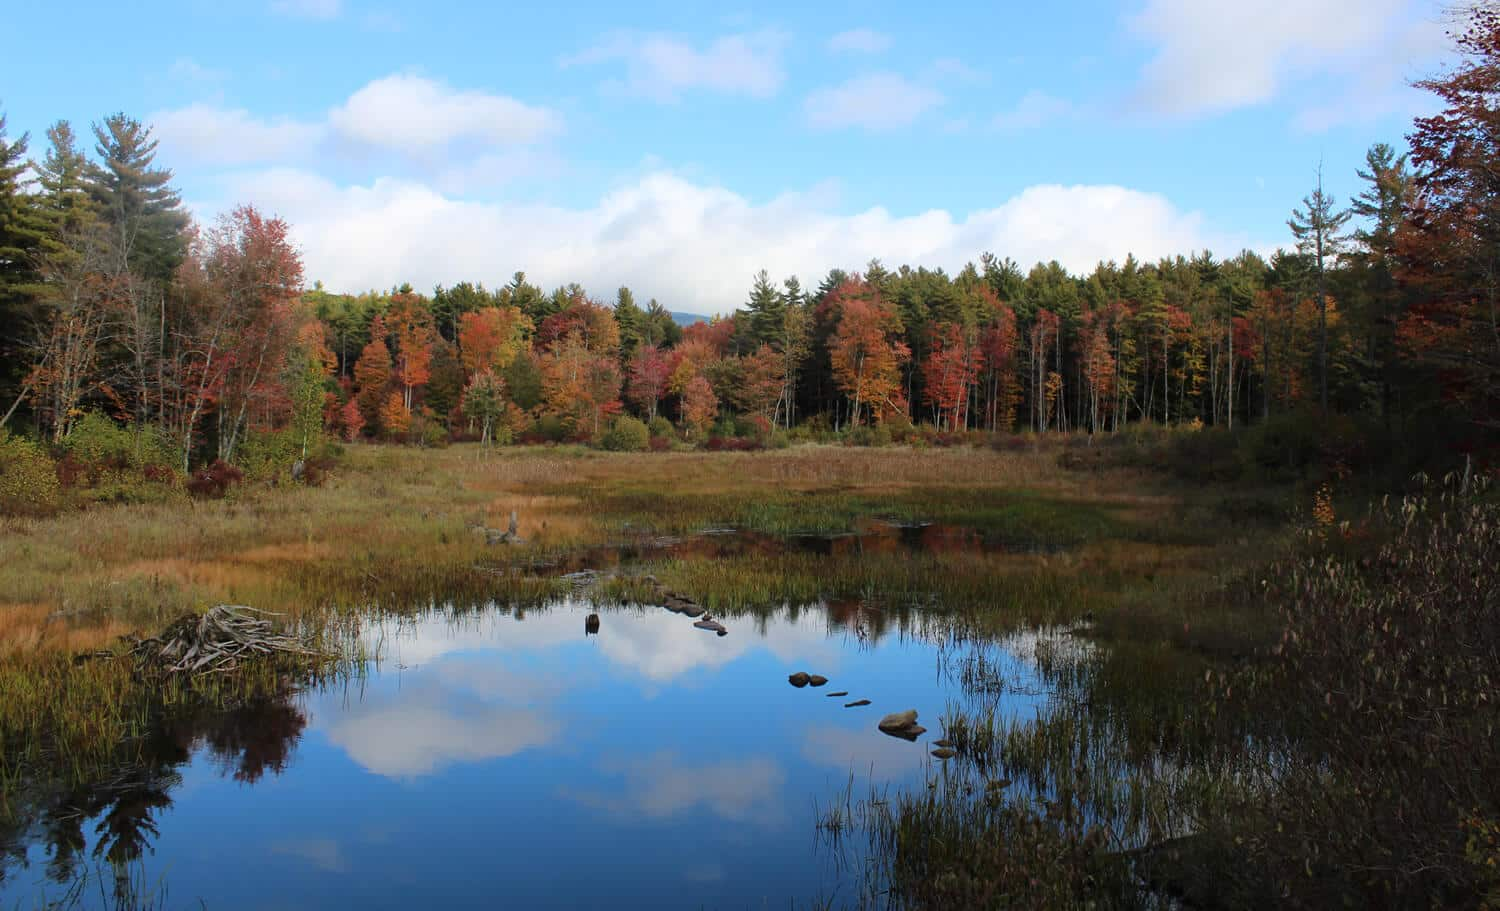 Blue sky and fluffy white clouds are reflected in a meadow pond surrounded by fall foliage